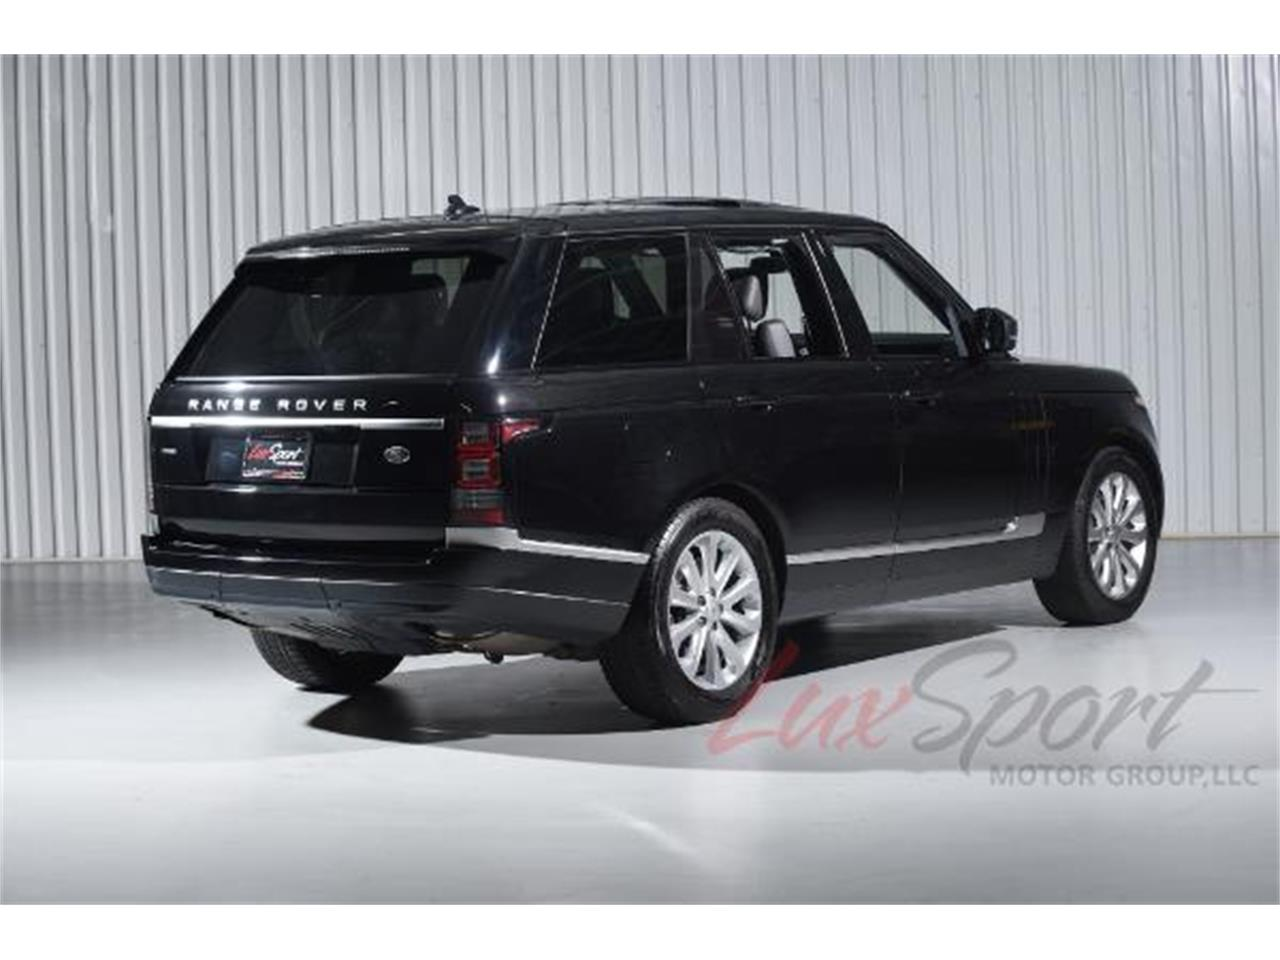 Large Picture of '16 Range Rover HSE located in New York - $84,995.00 - LA69